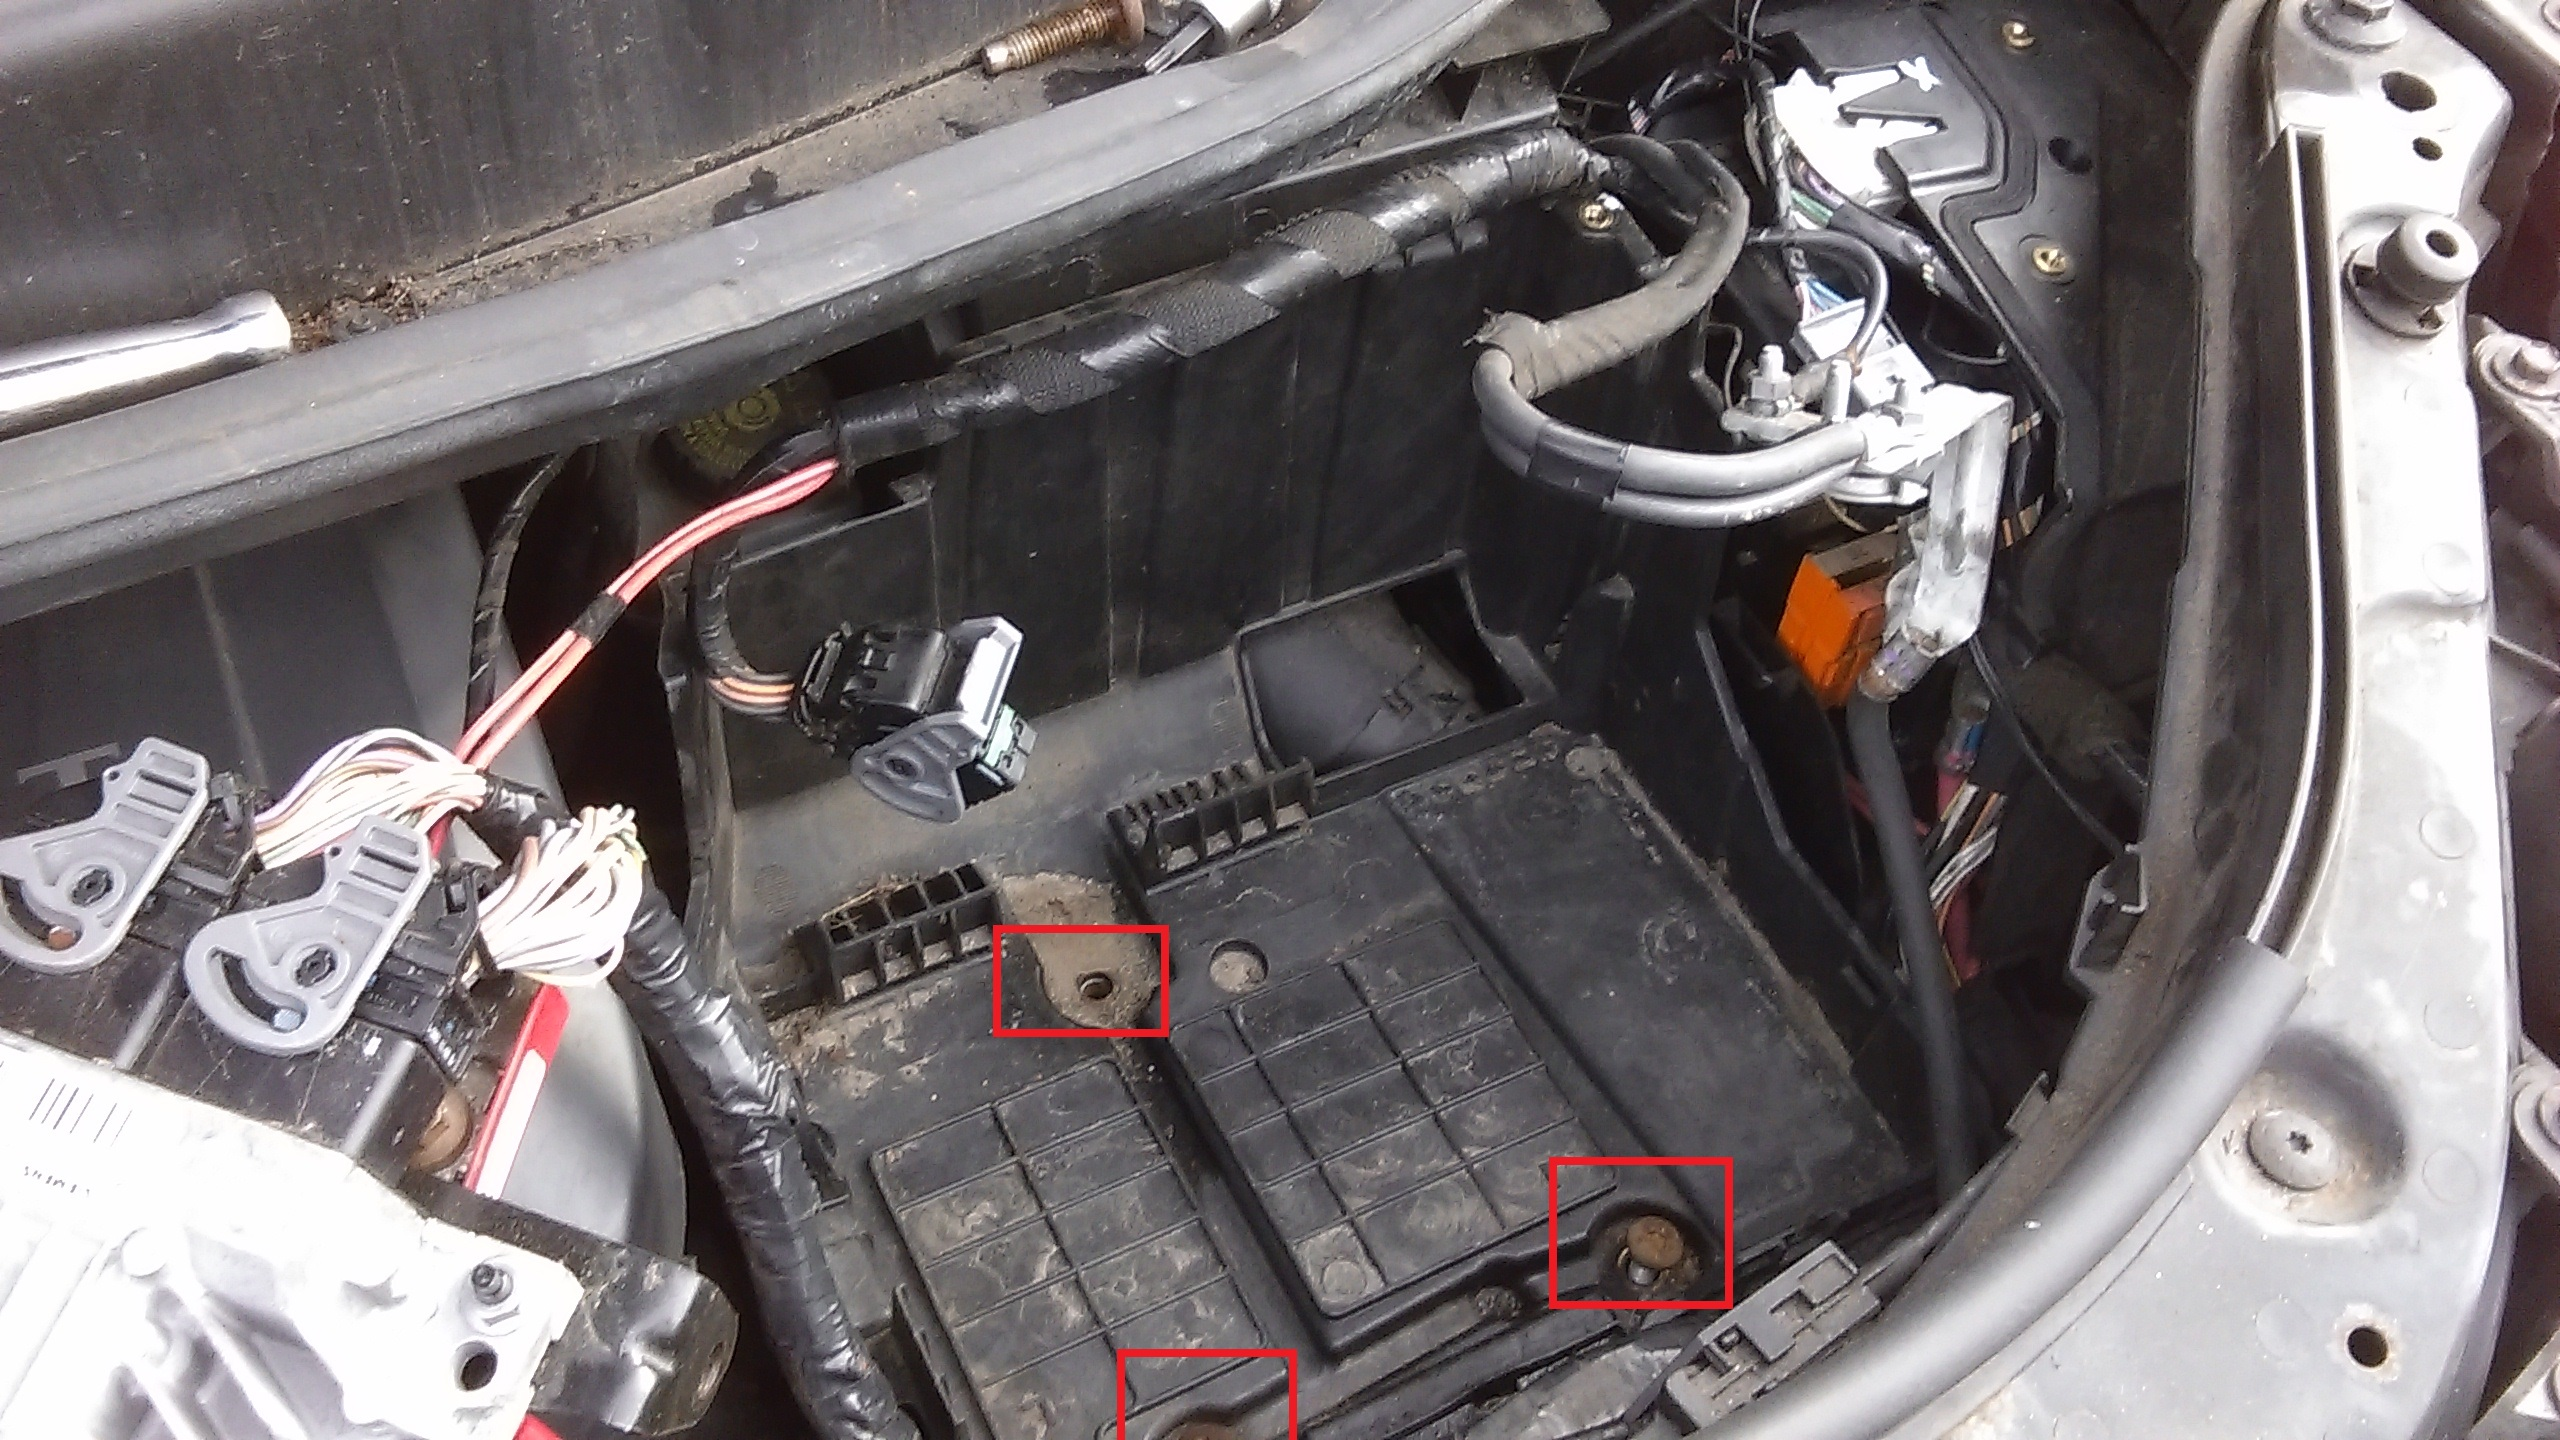 renault grand scenic engine fusebox access javalins's blog renault scenic trunk the fuse box will now carefully pull out into the battery tray space unclip the connectors on top you'll need to undo the bolt holding the three live feed